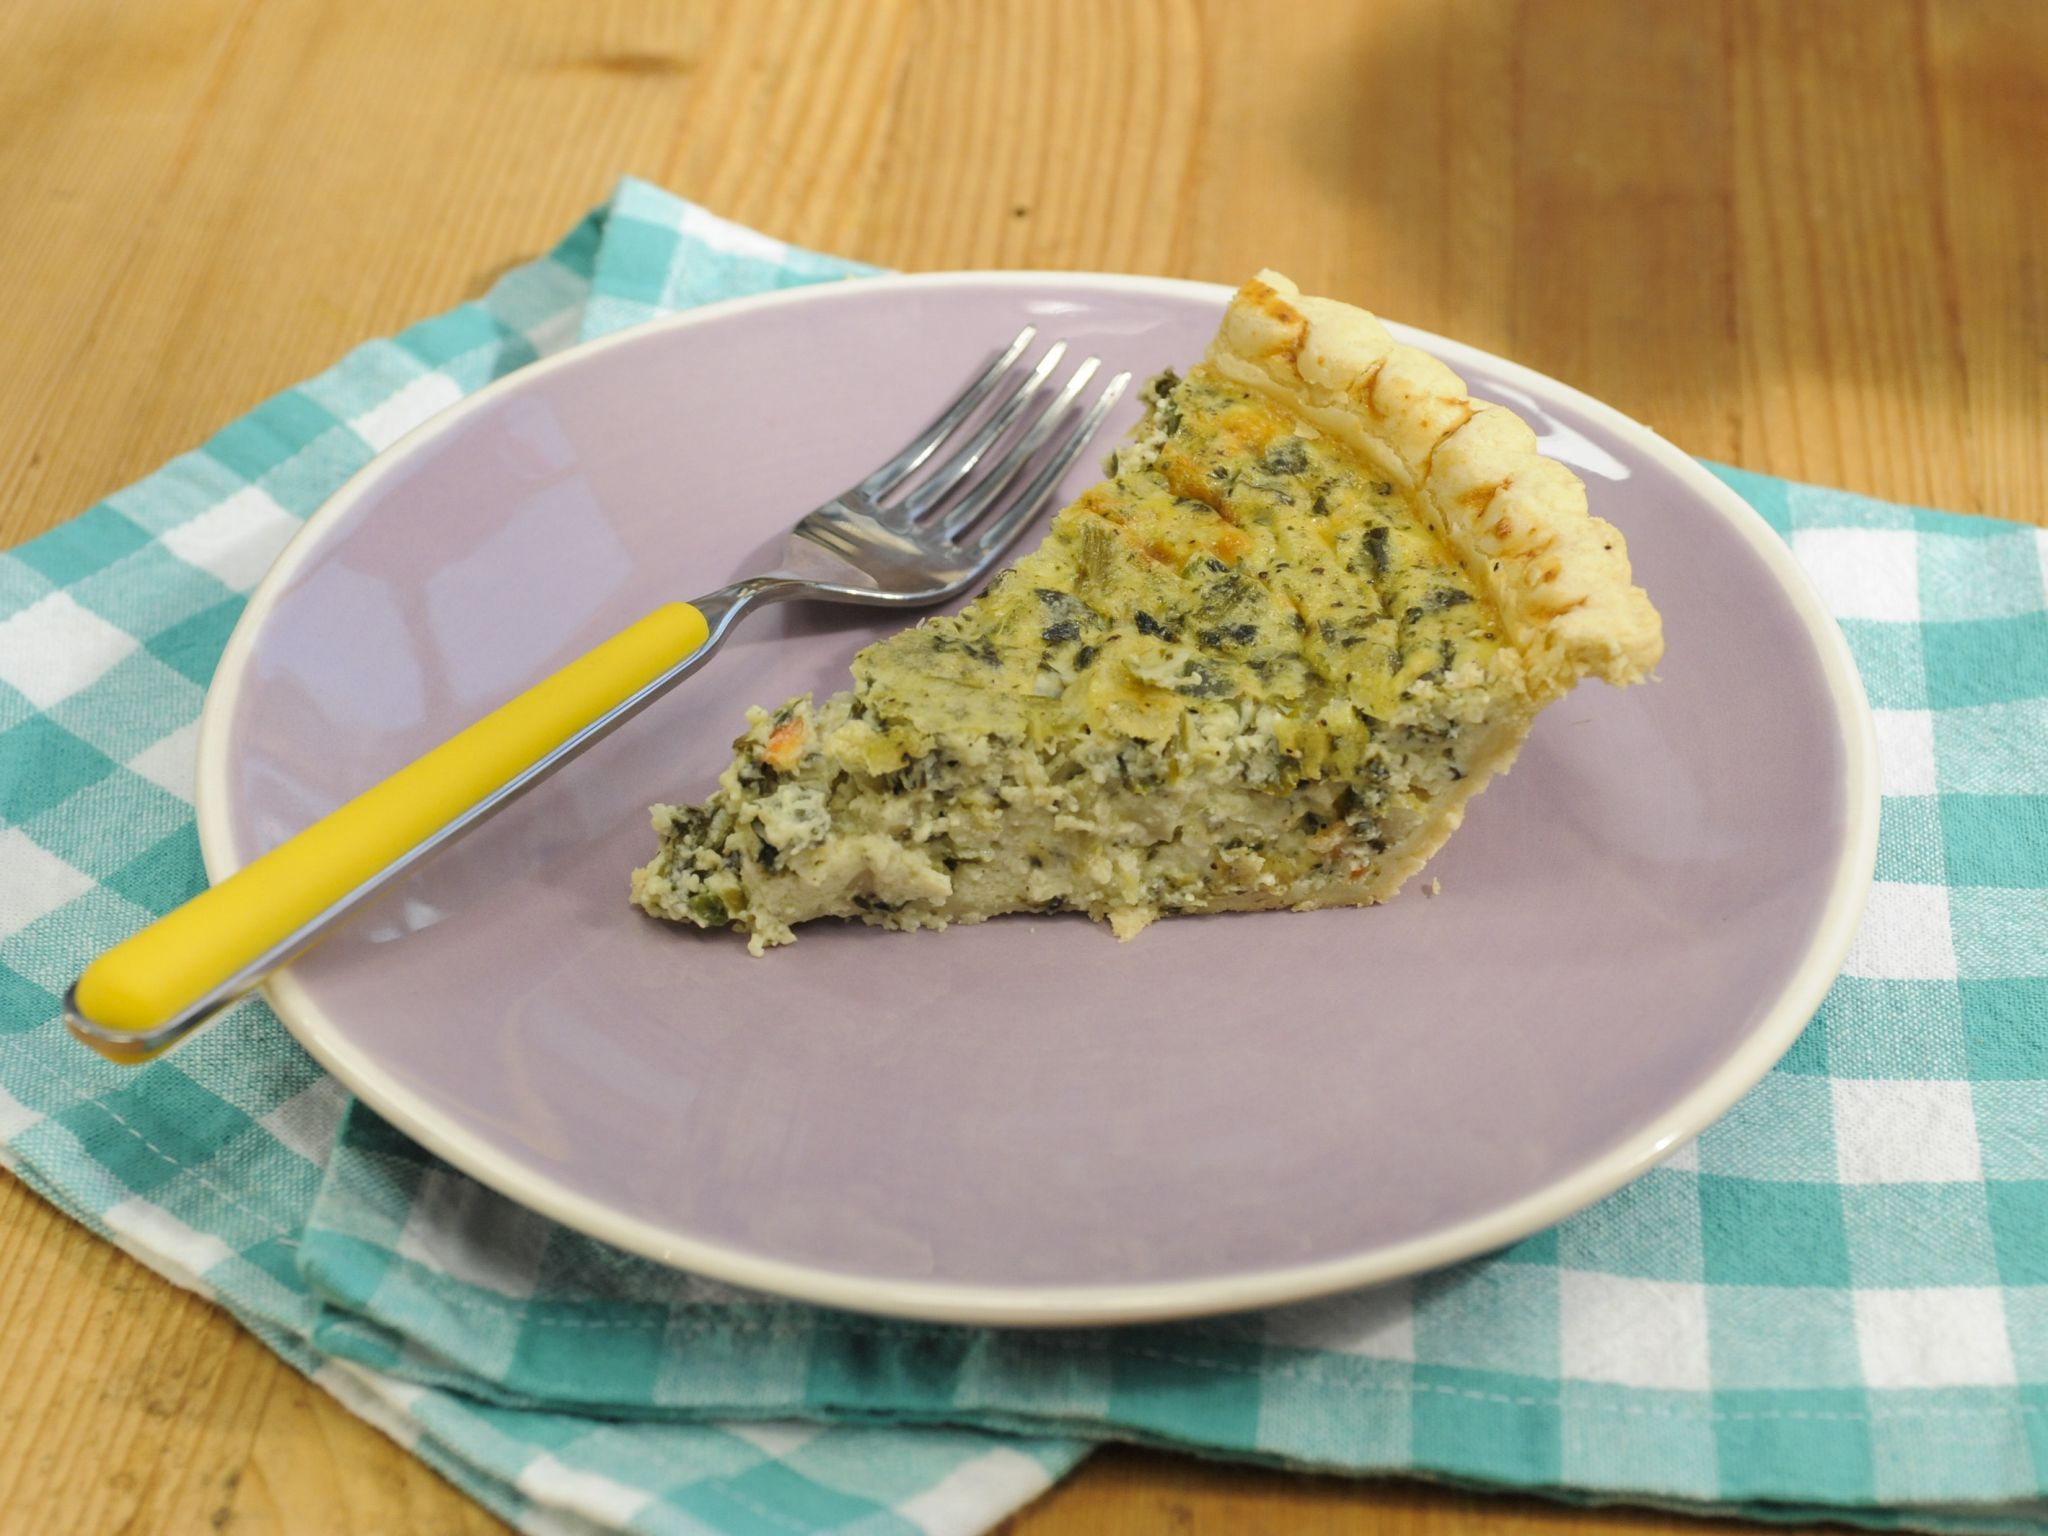 Five ingredient spinach dip quiche recipe quiche recipes five ingredient spinach dip quiche recipe quiche recipes spinach dip and quiches forumfinder Image collections